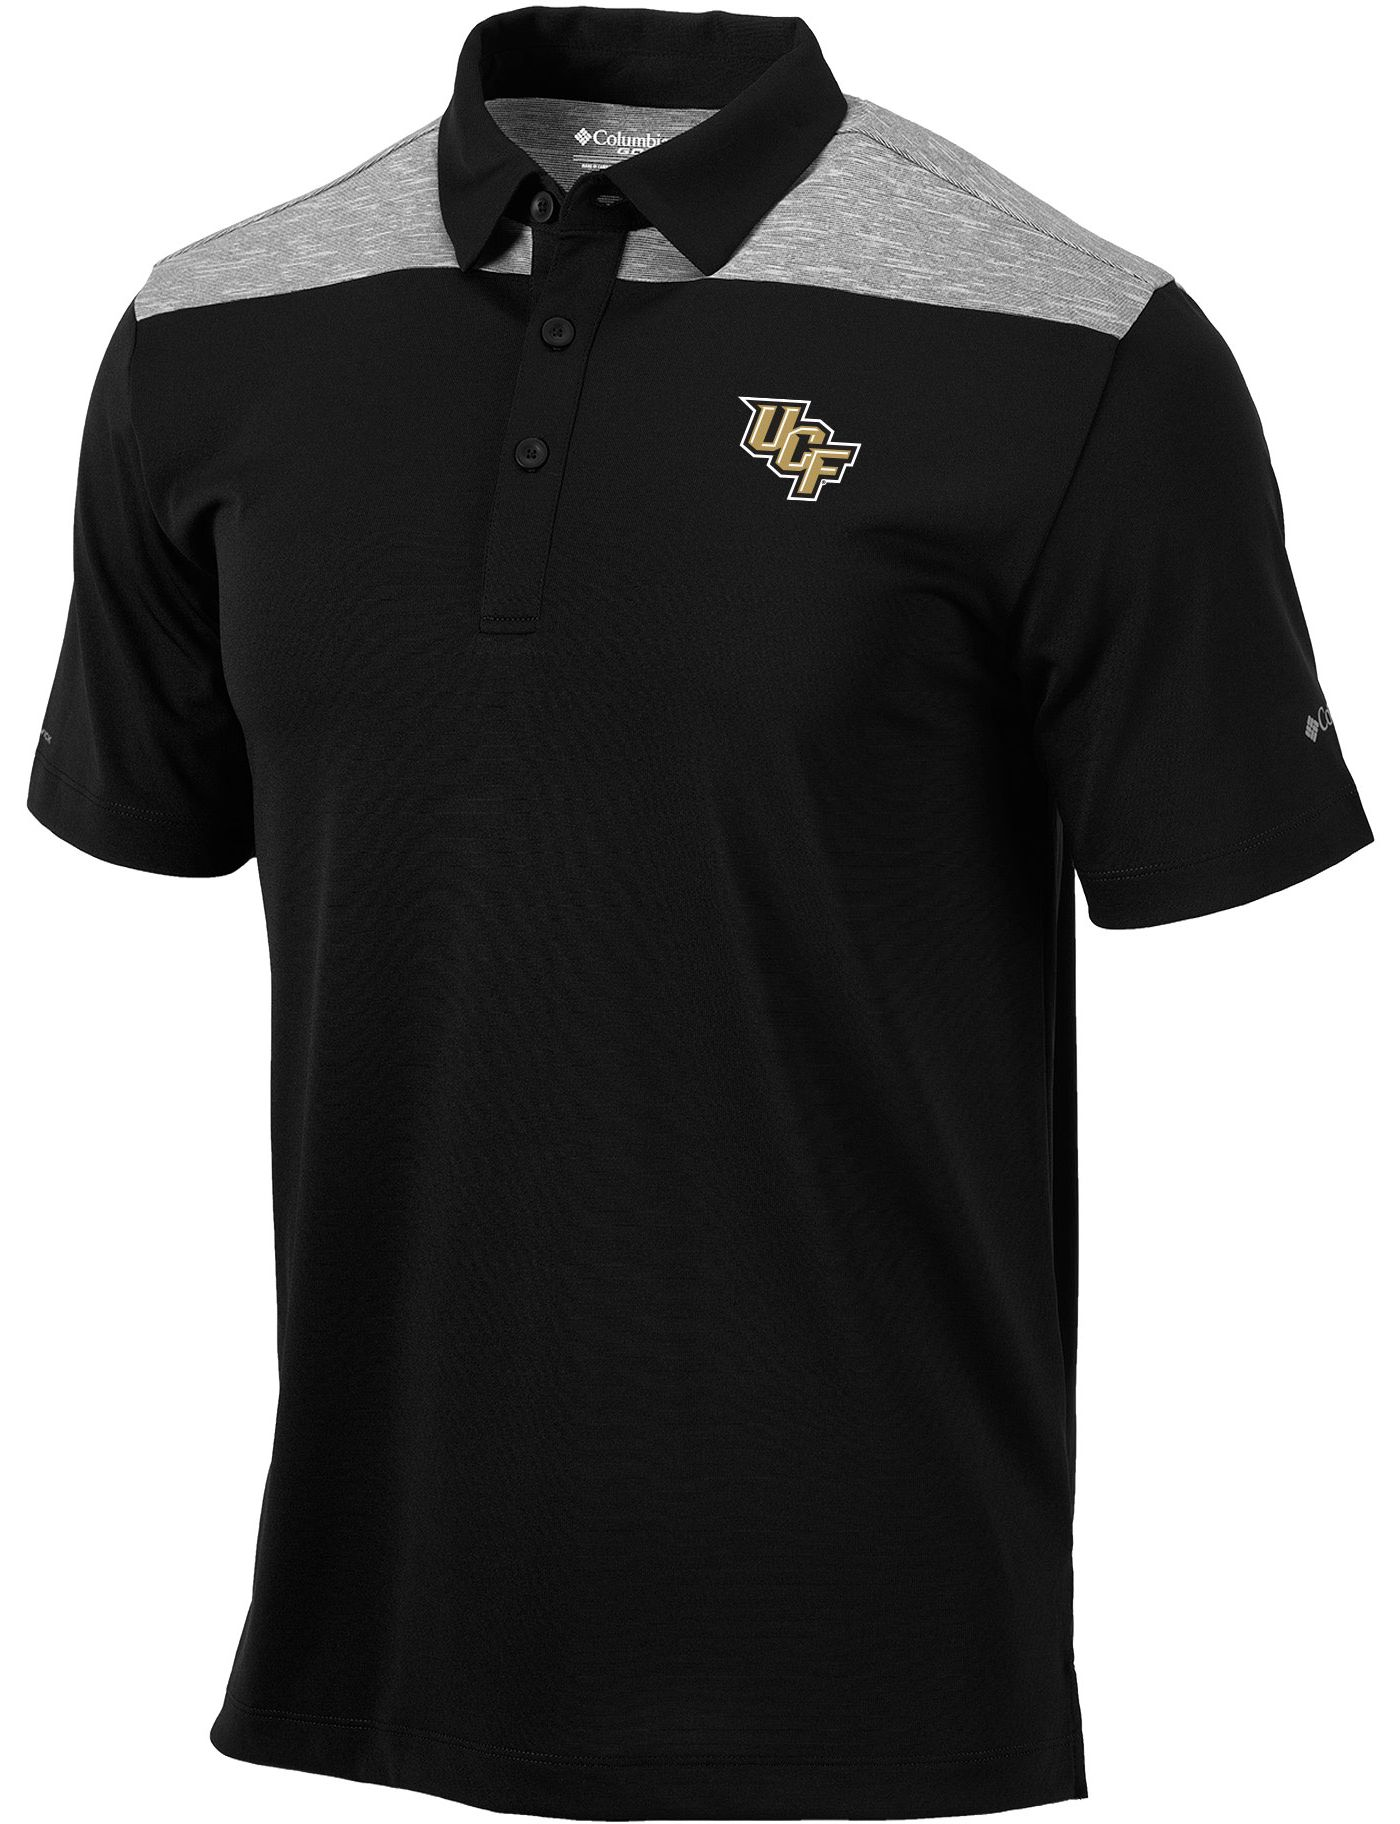 Columbia Men's UCF Knights Black Utility Performance Polo